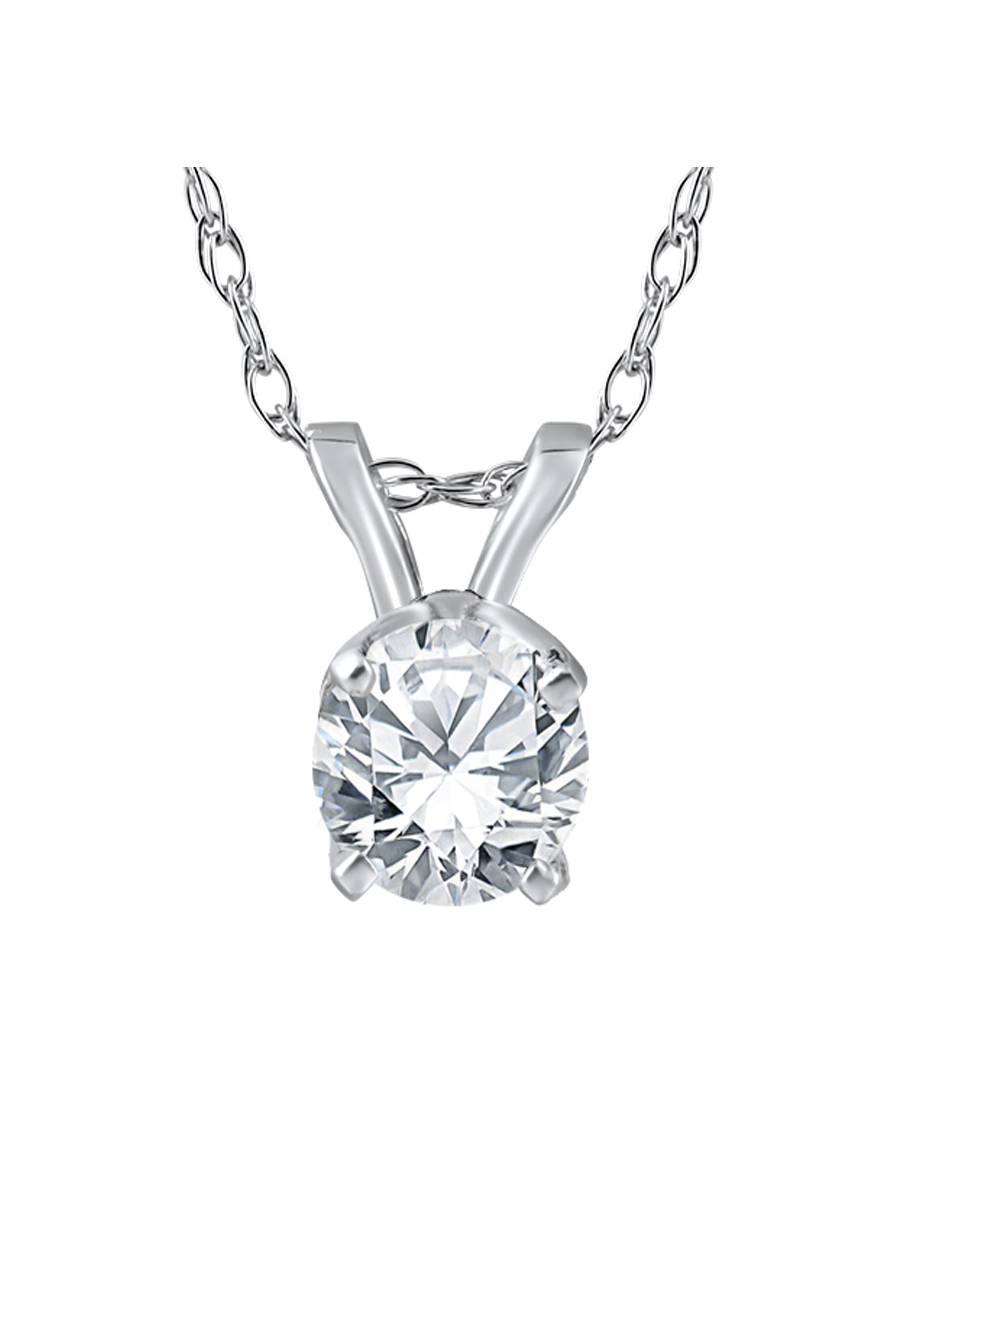 1 2ct Solitaire Round Diamond White Gold New Pendant Womens Necklace by Pompeii3